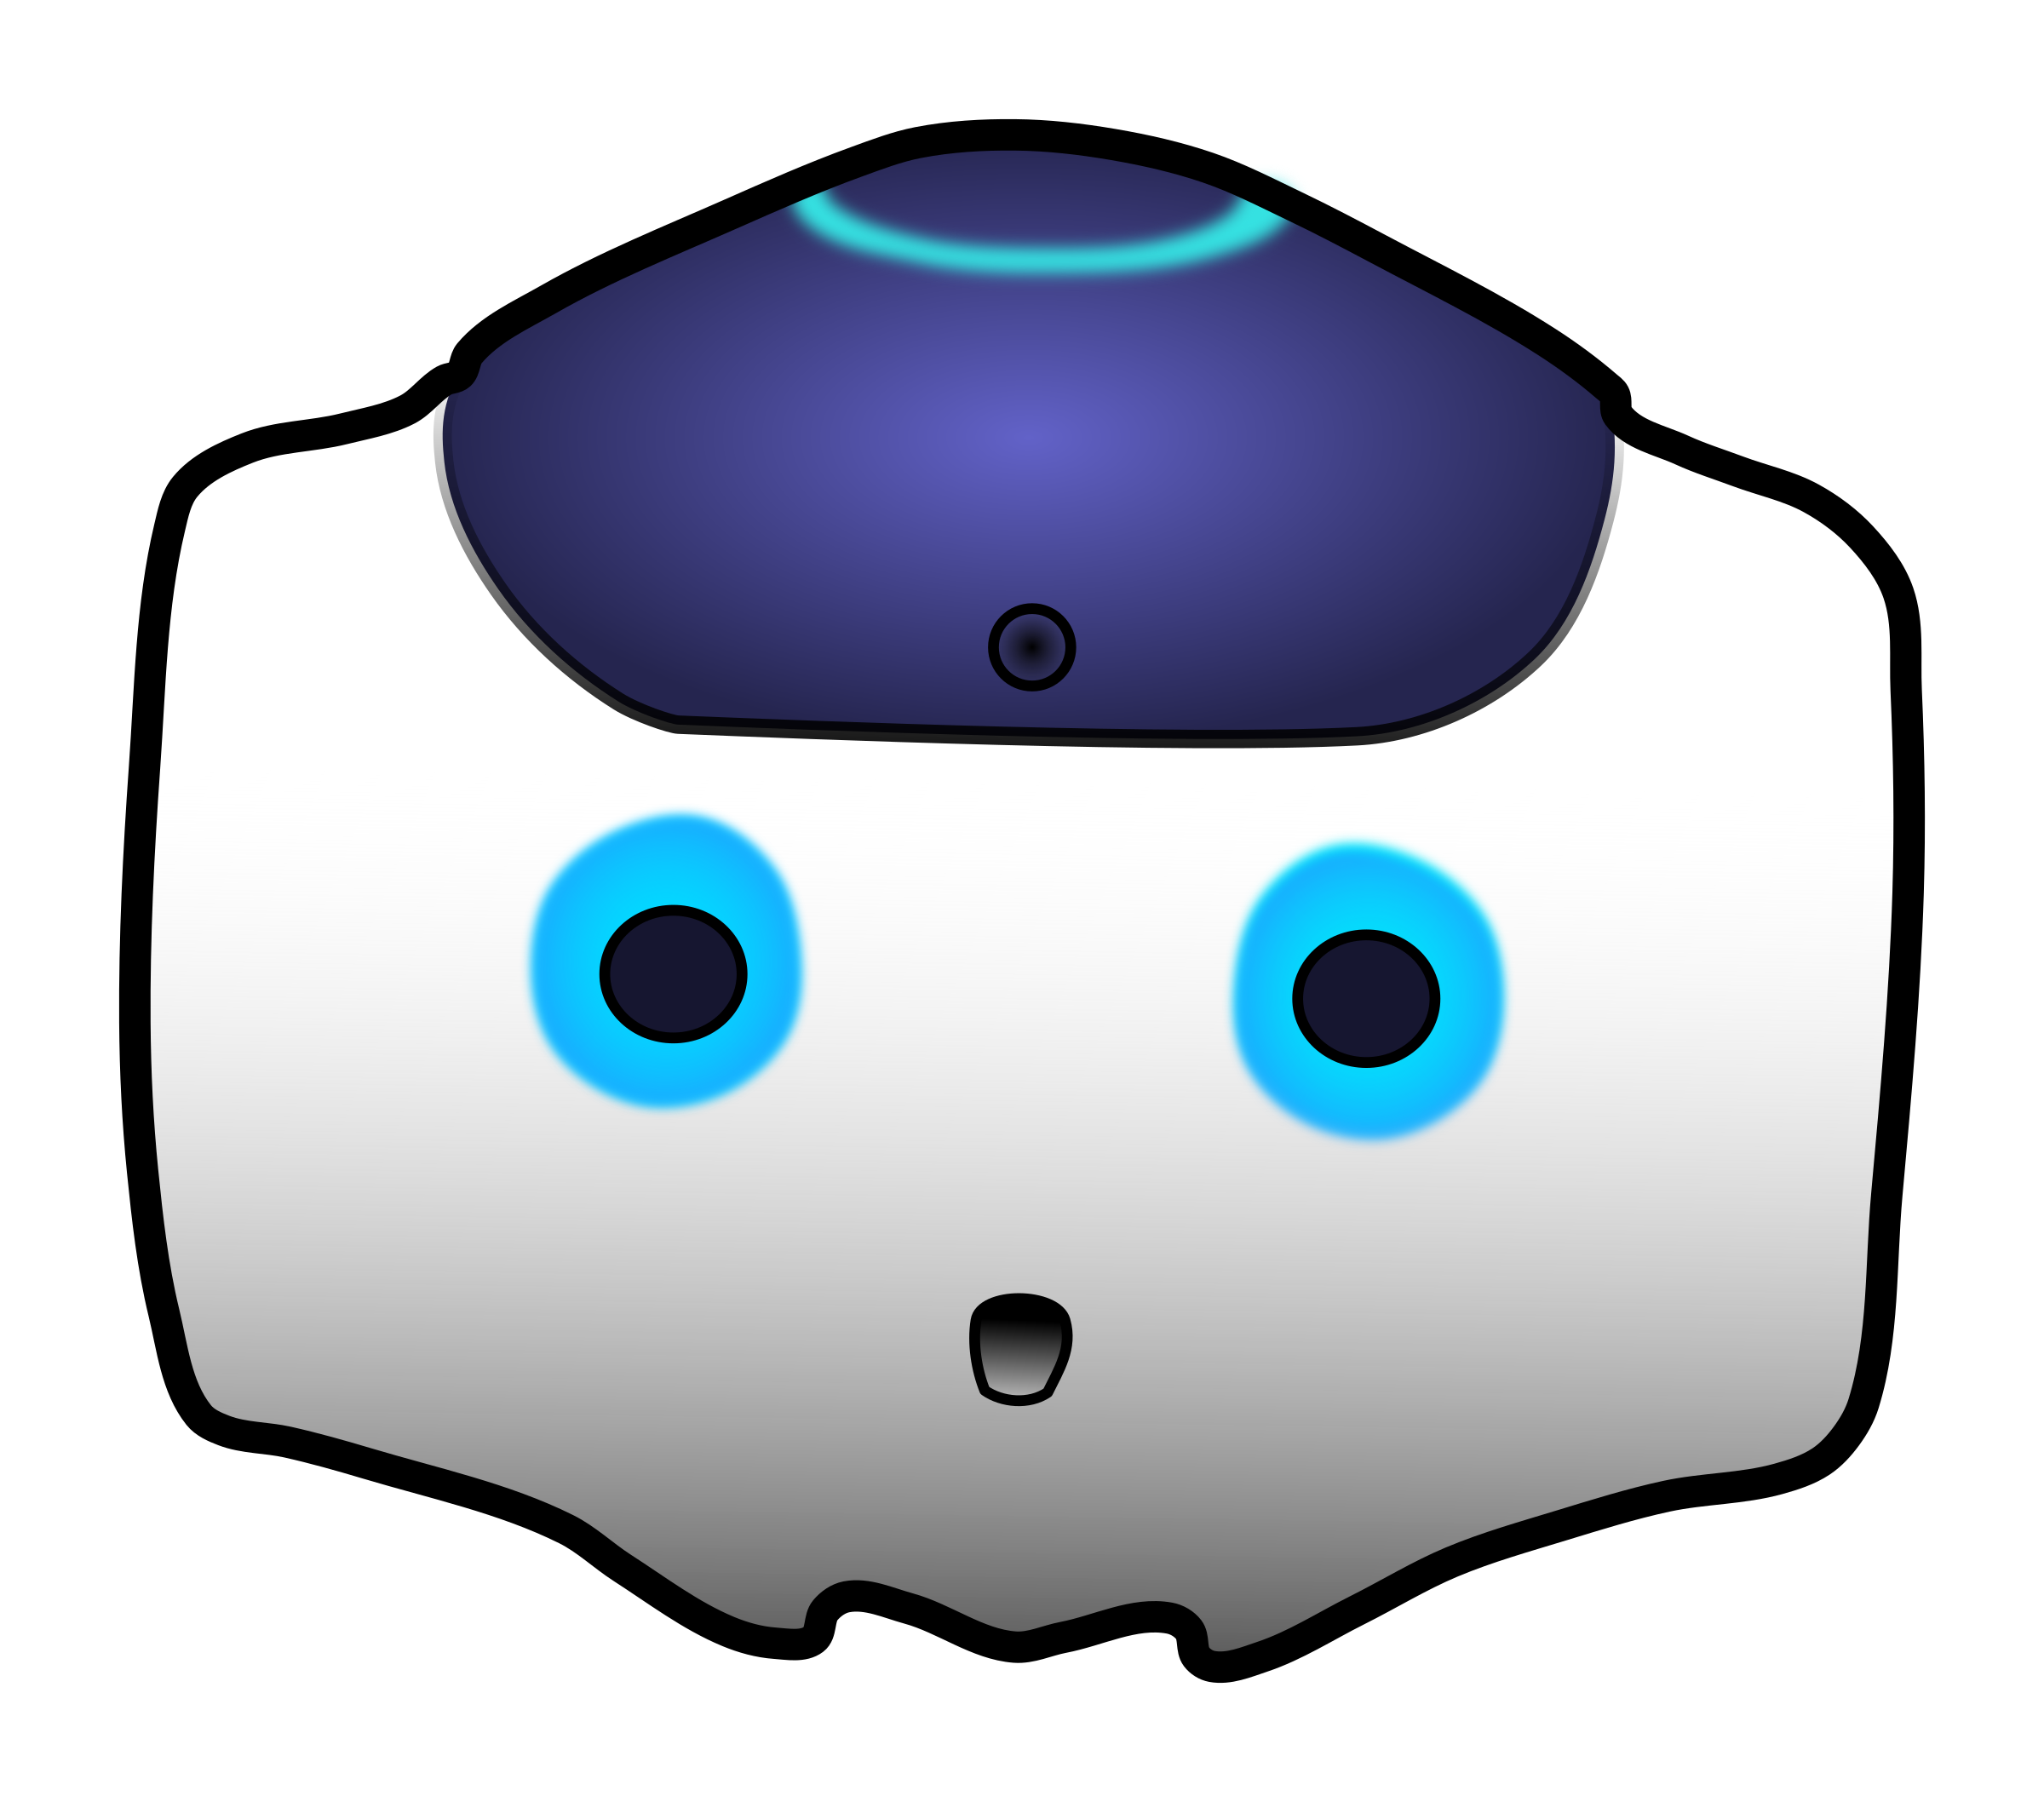 Picture clipart head. Of nao robot big